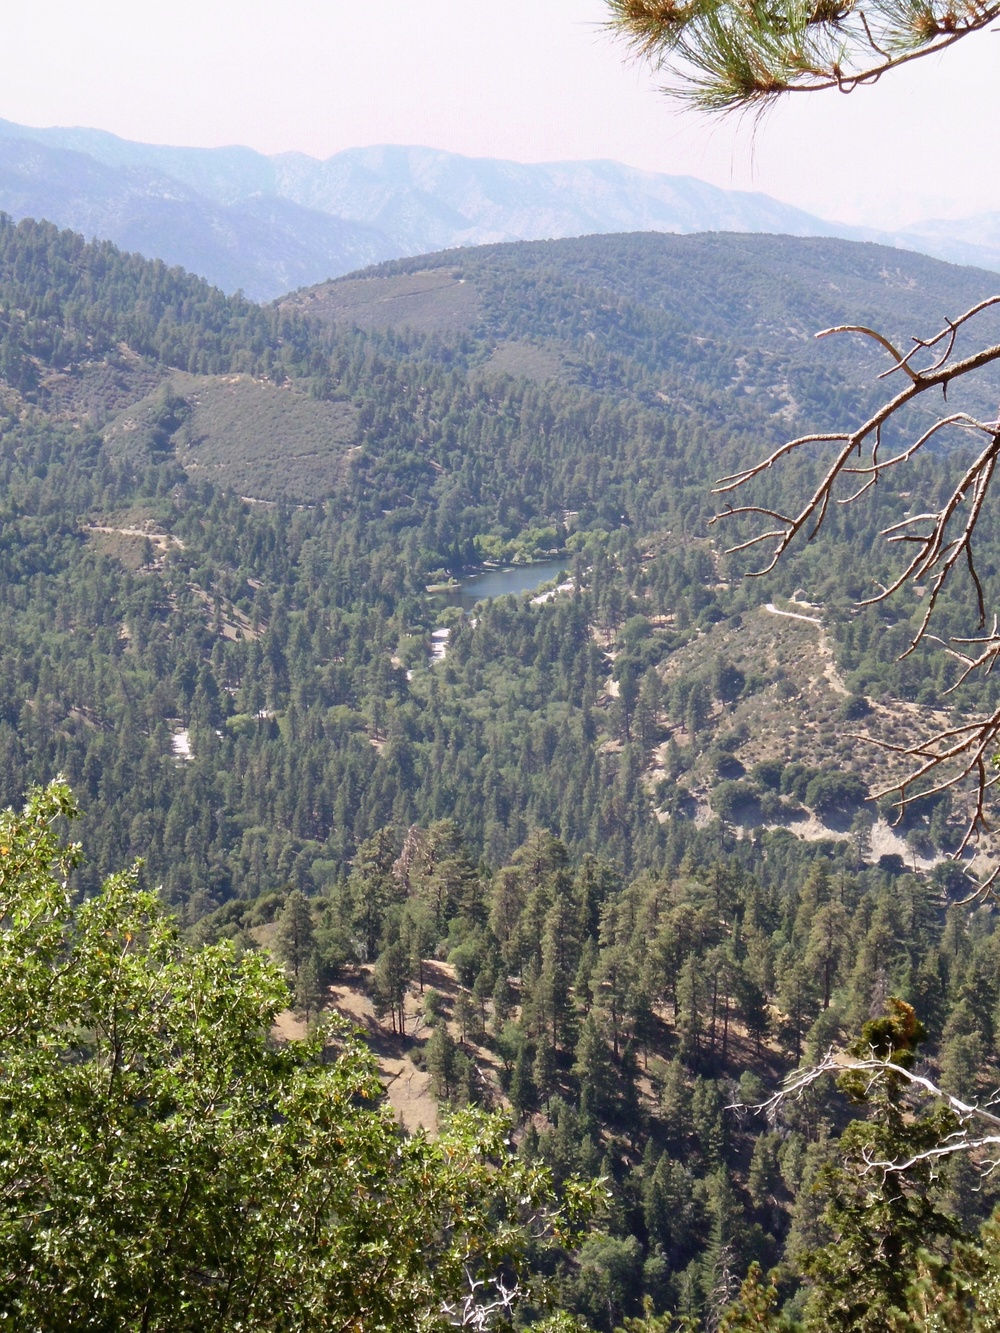 View from Angeles Scenic Byway